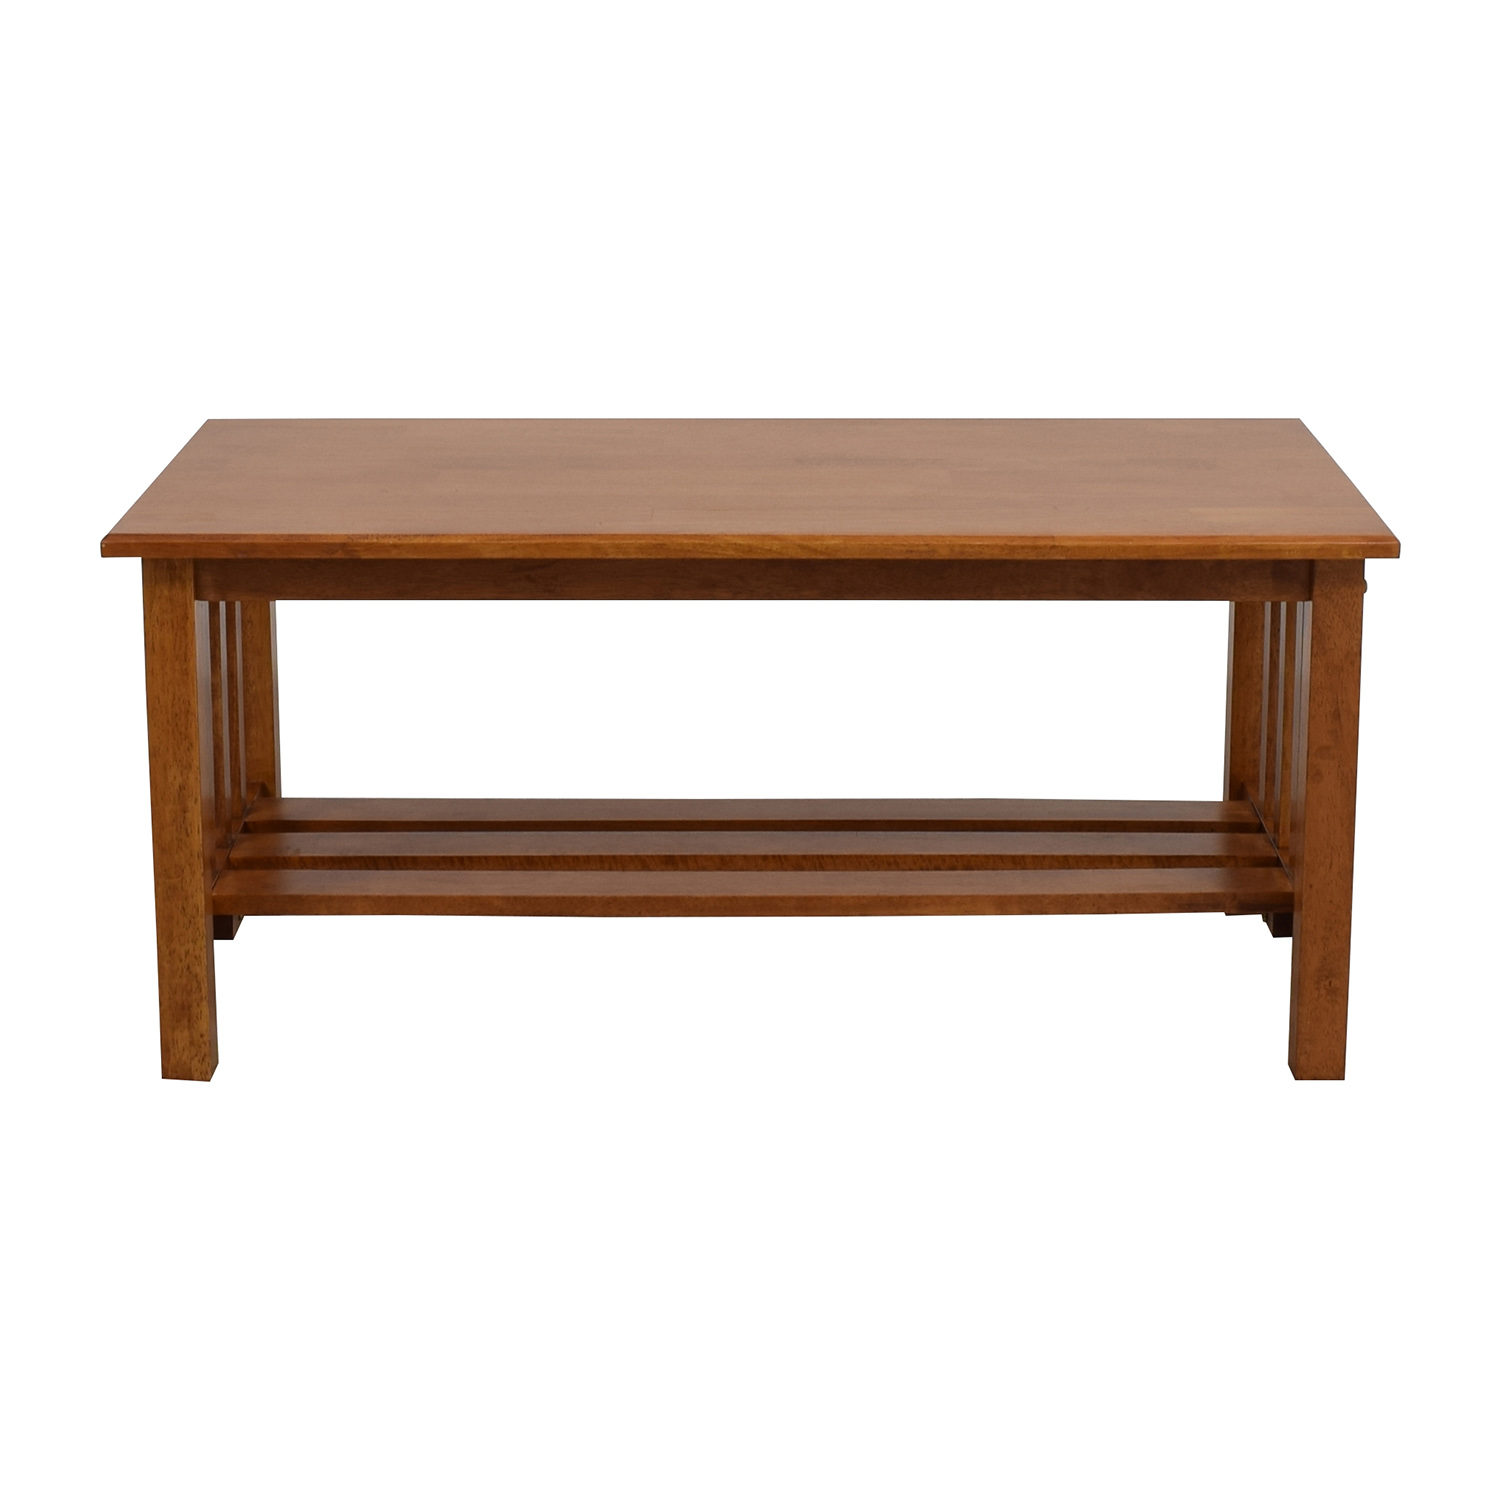 56% OFF Light Brown Coffee Table with Bottom Shelf Tables